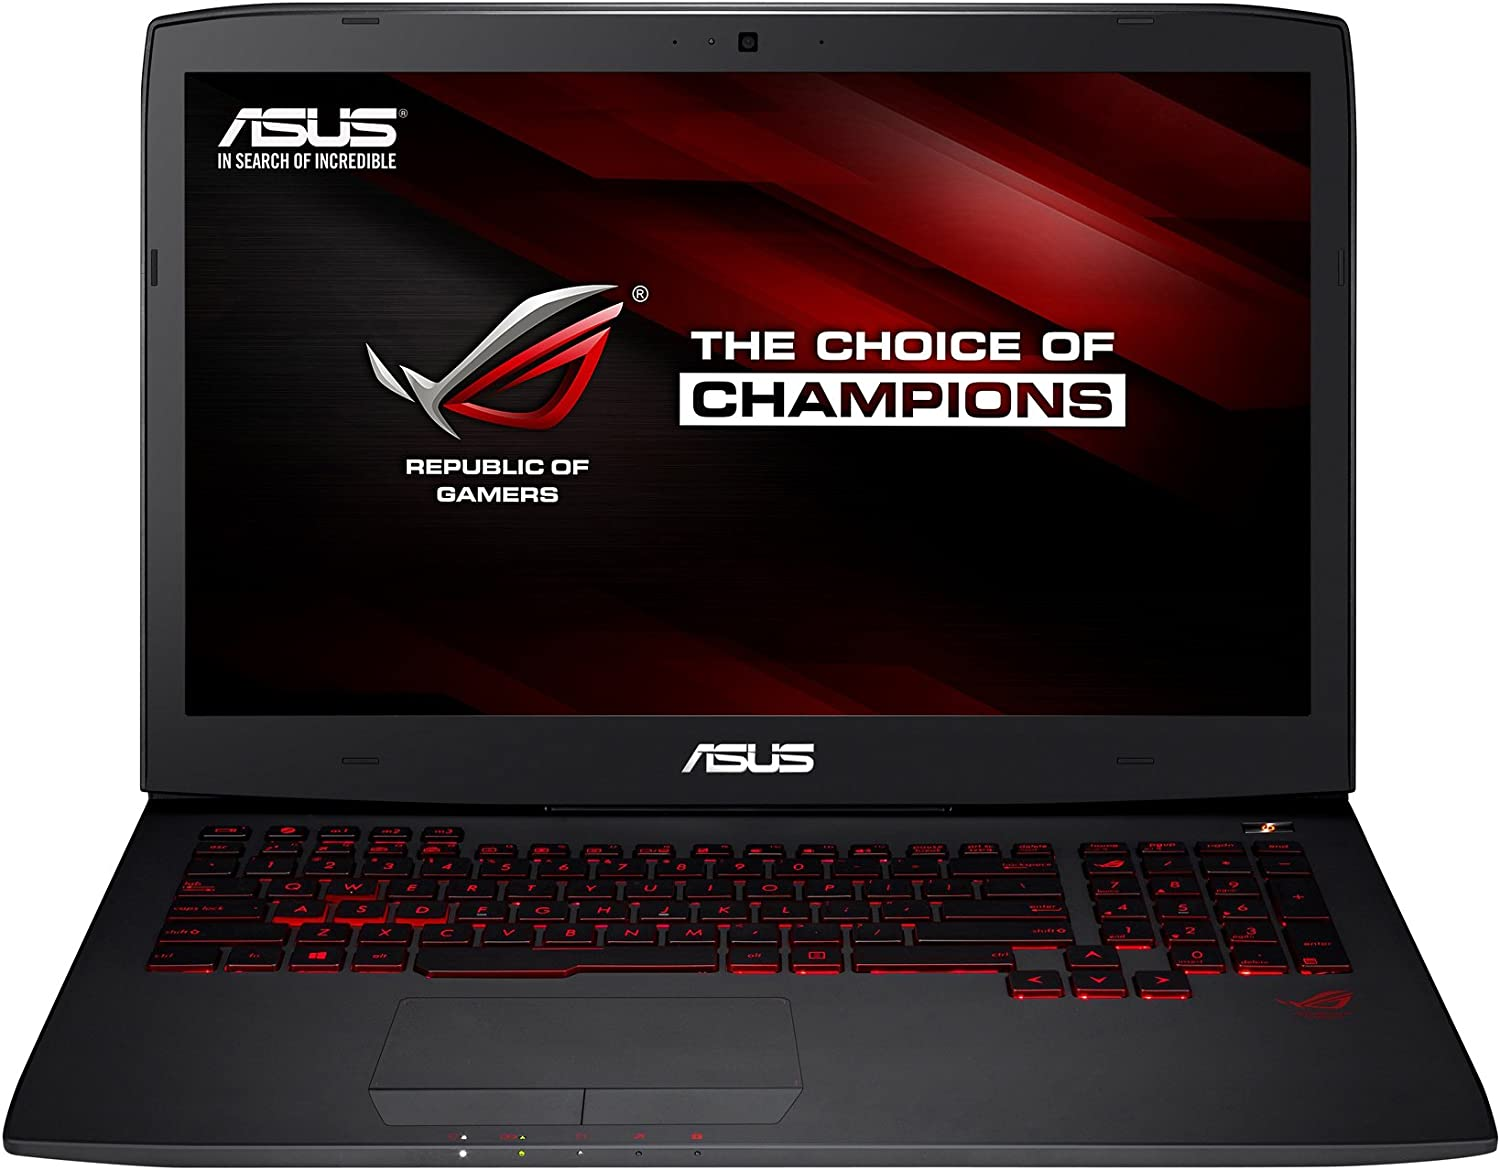 Asus Gaming Laptop - ASUS ROG - Bestseller 2021